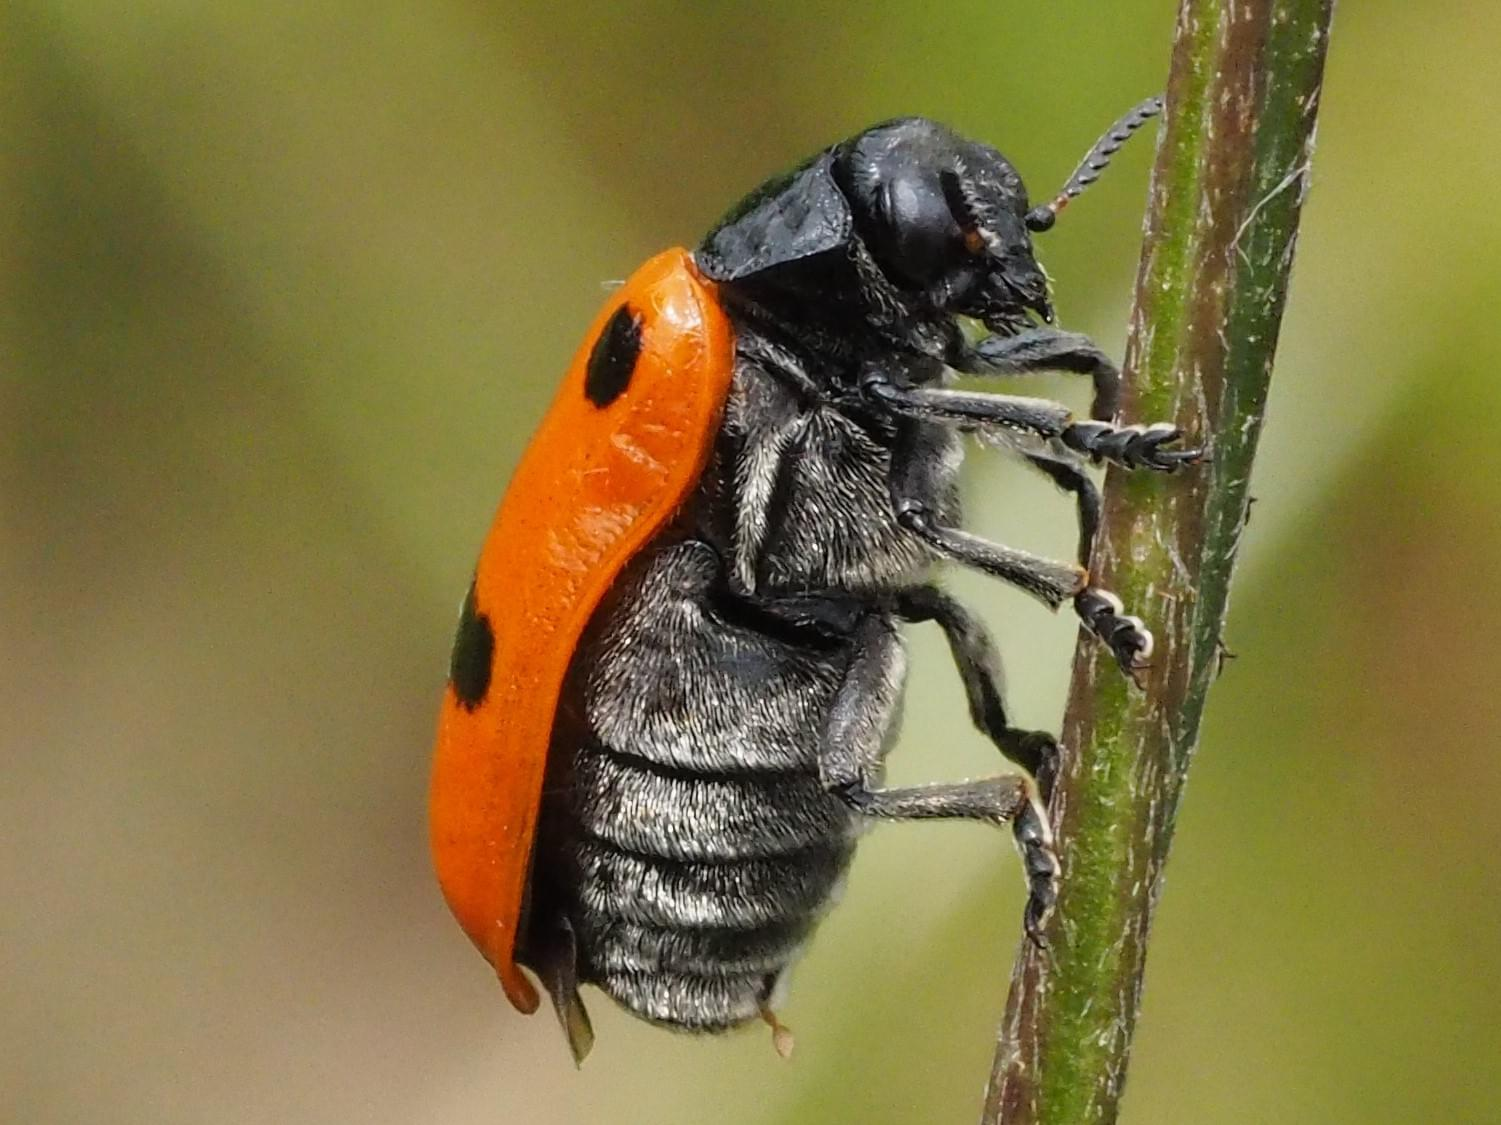 Four-spotted leaf beetle